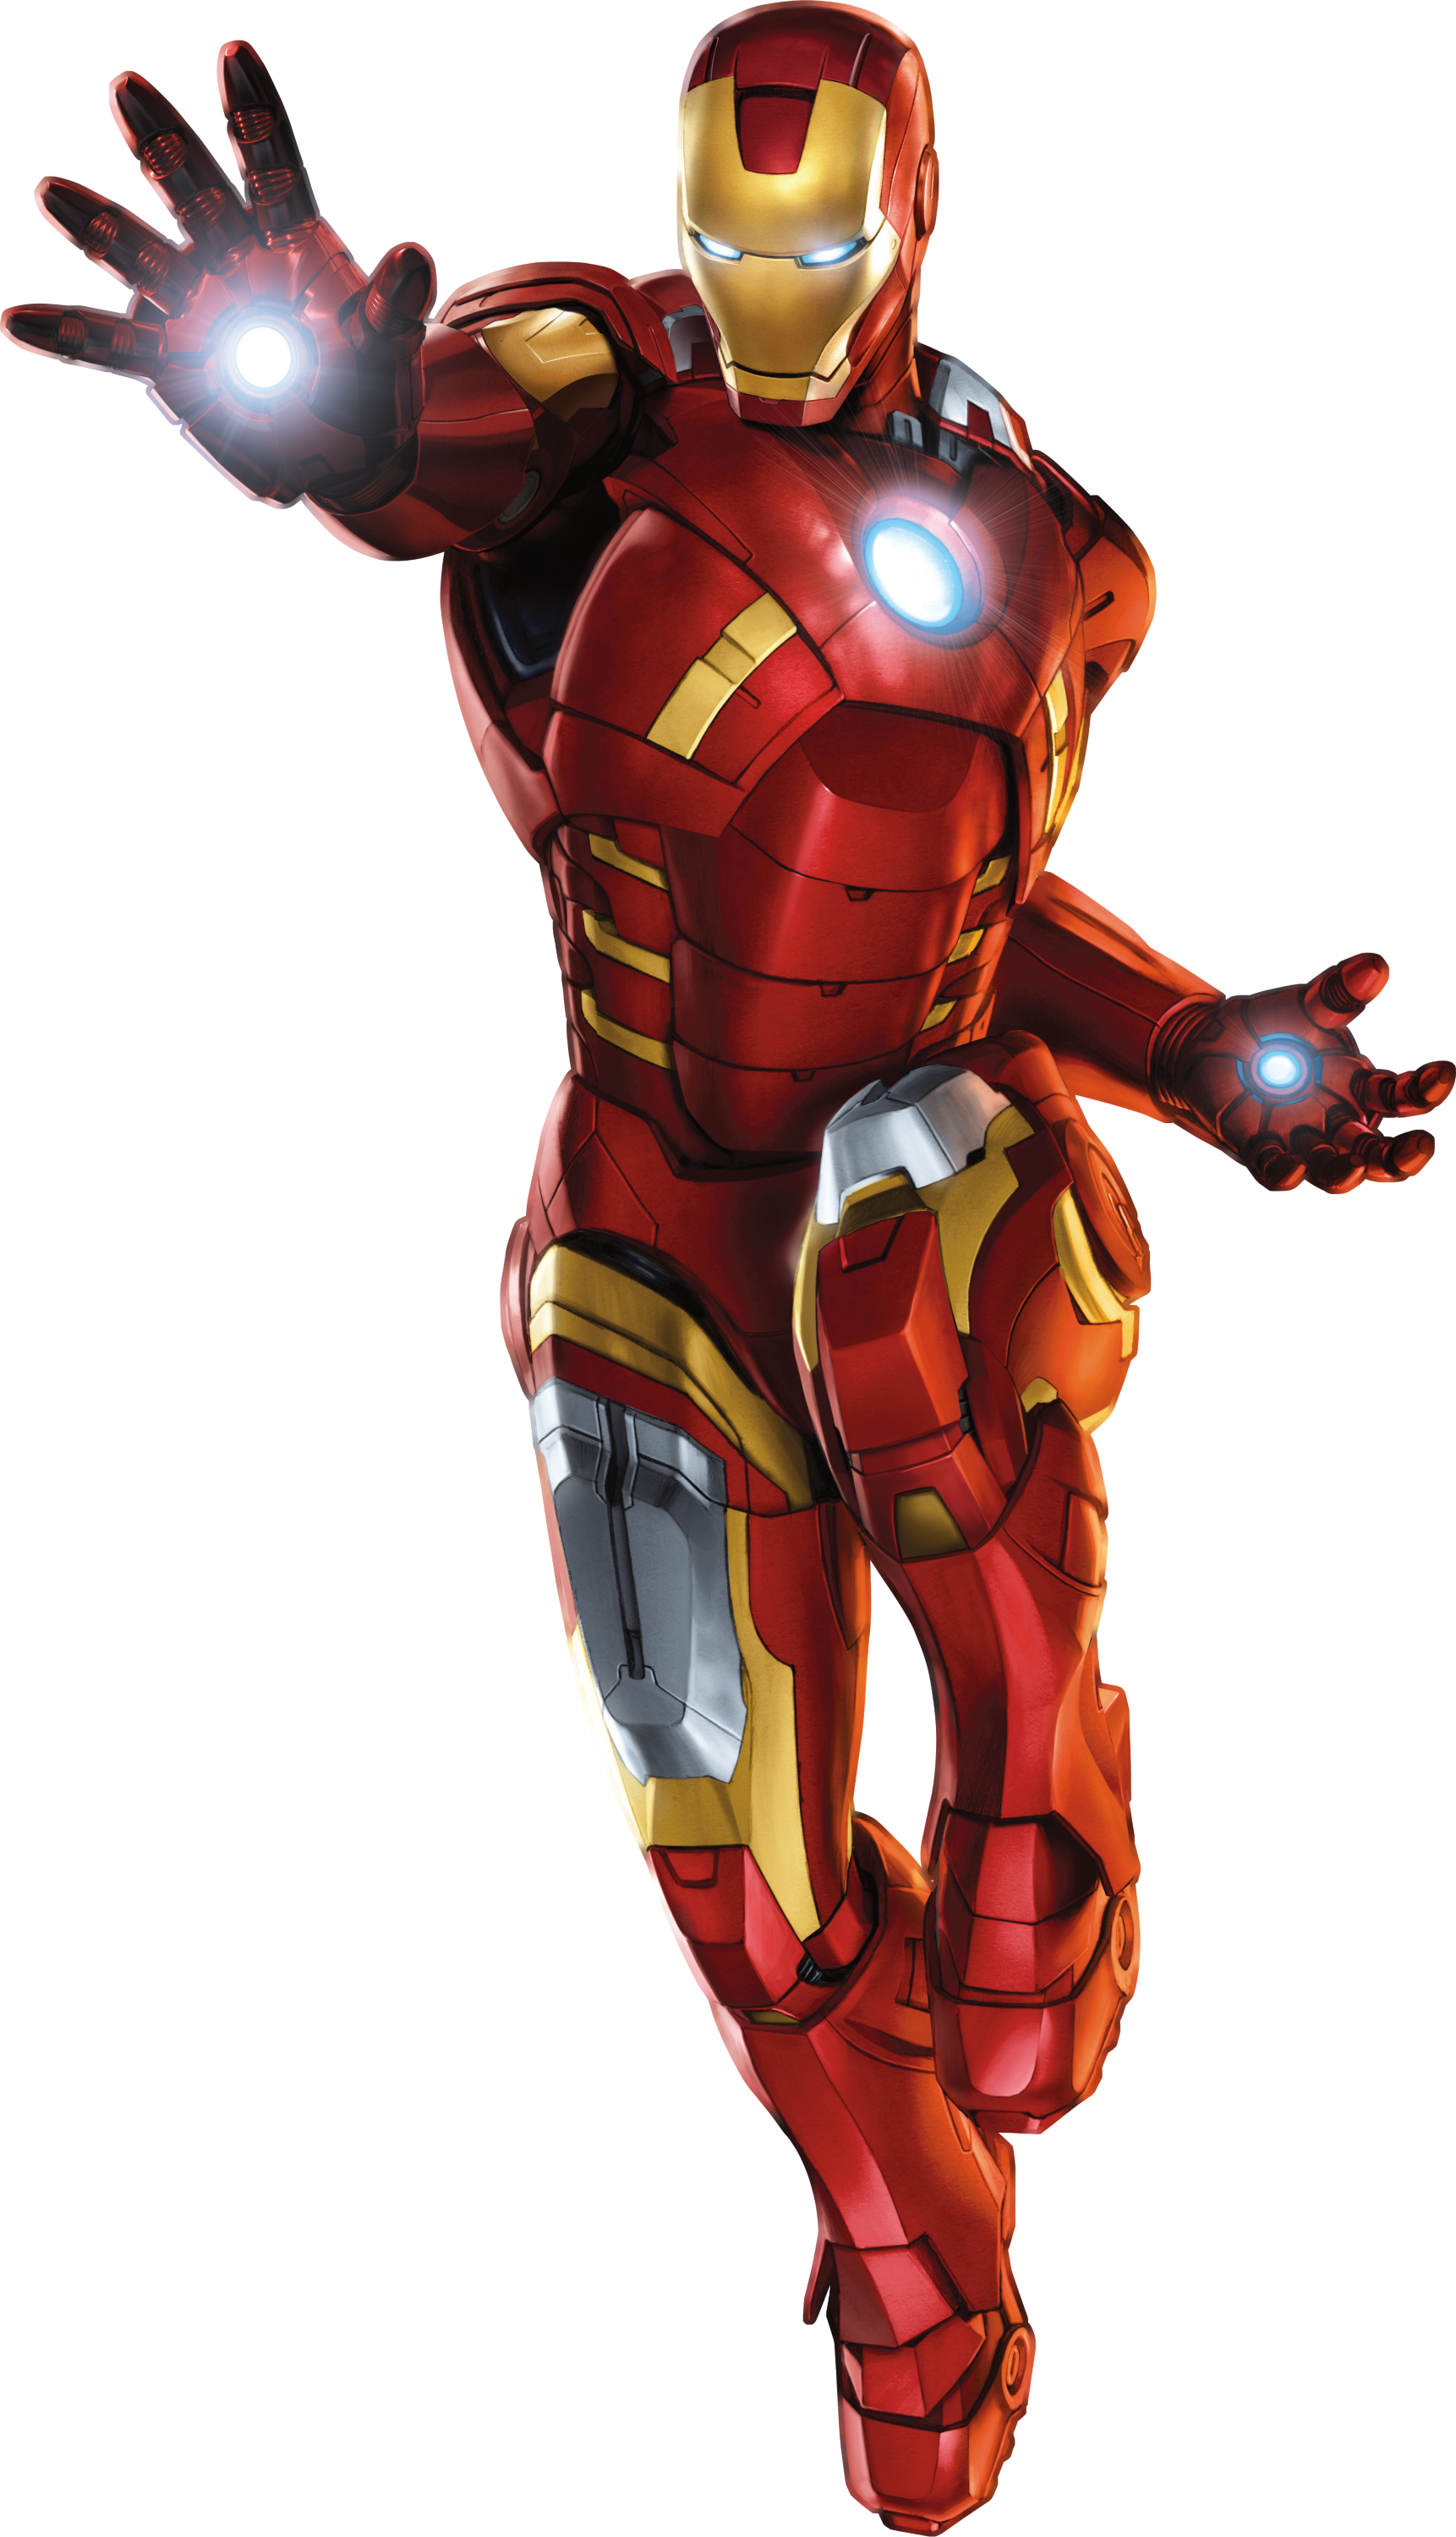 Iron man death battle fanon wiki fandom powered by wikia - Iron man 1 images ...